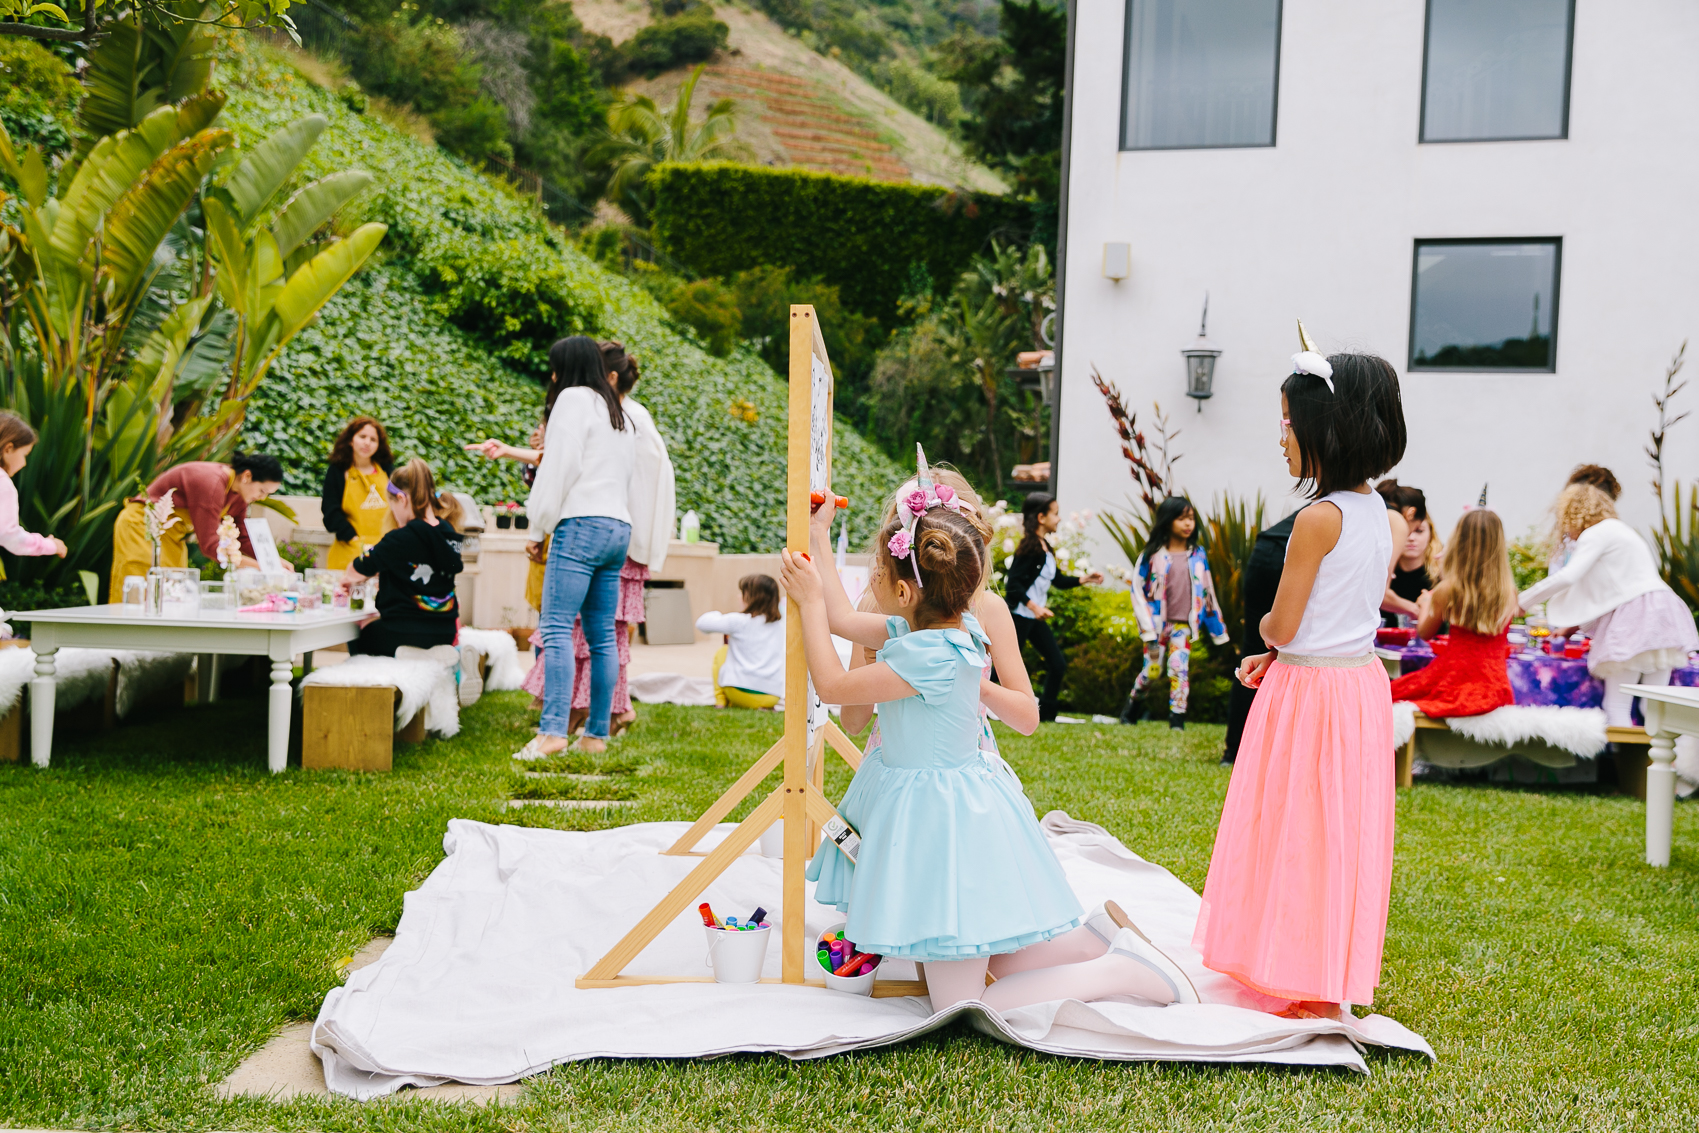 Los_Angeles_Family_Photographer_Luxury_Childrens_Party_Beverly_Hills_Unicorn_Birthday_Party-0936.jpg